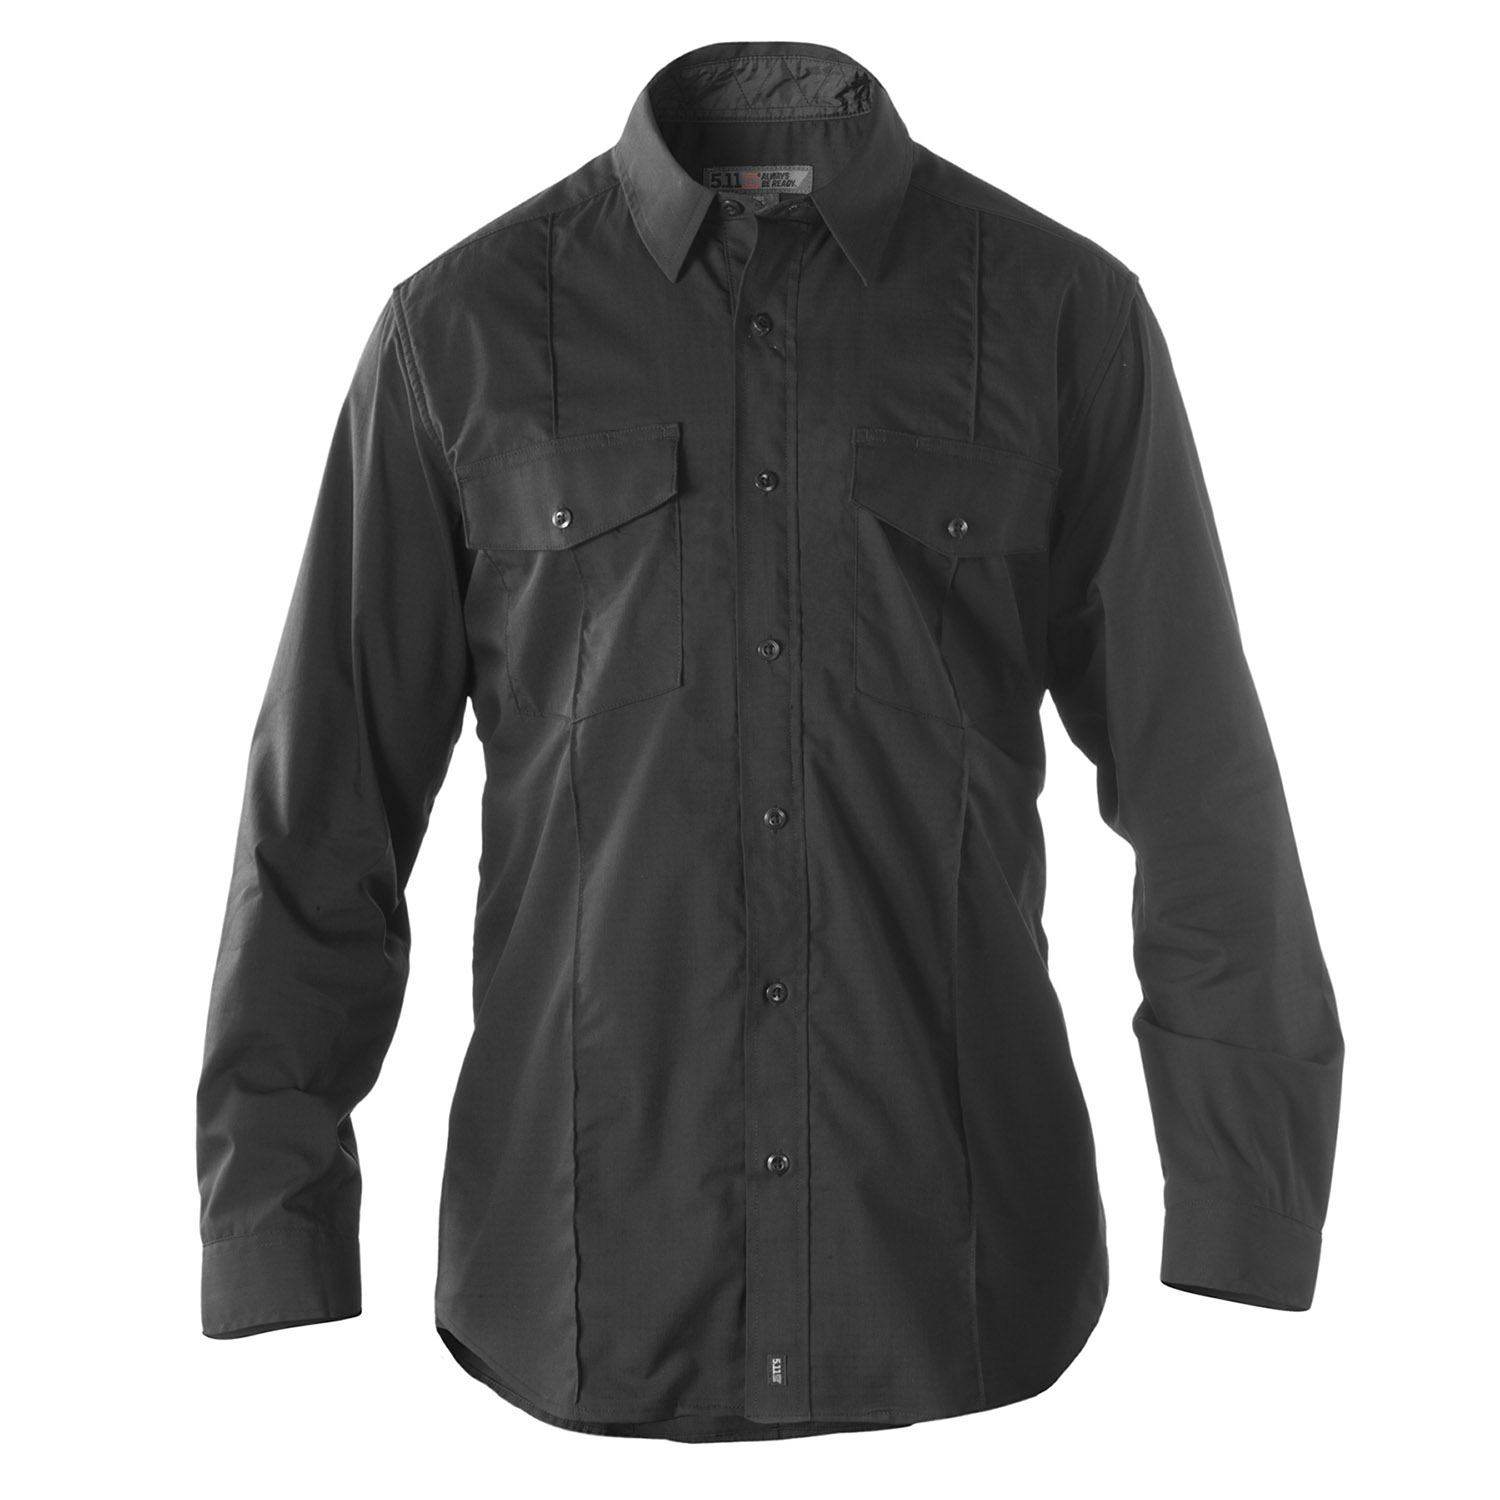 5.11 Tactical Women's Long Sleeve Class A Stryke PDU Shirt